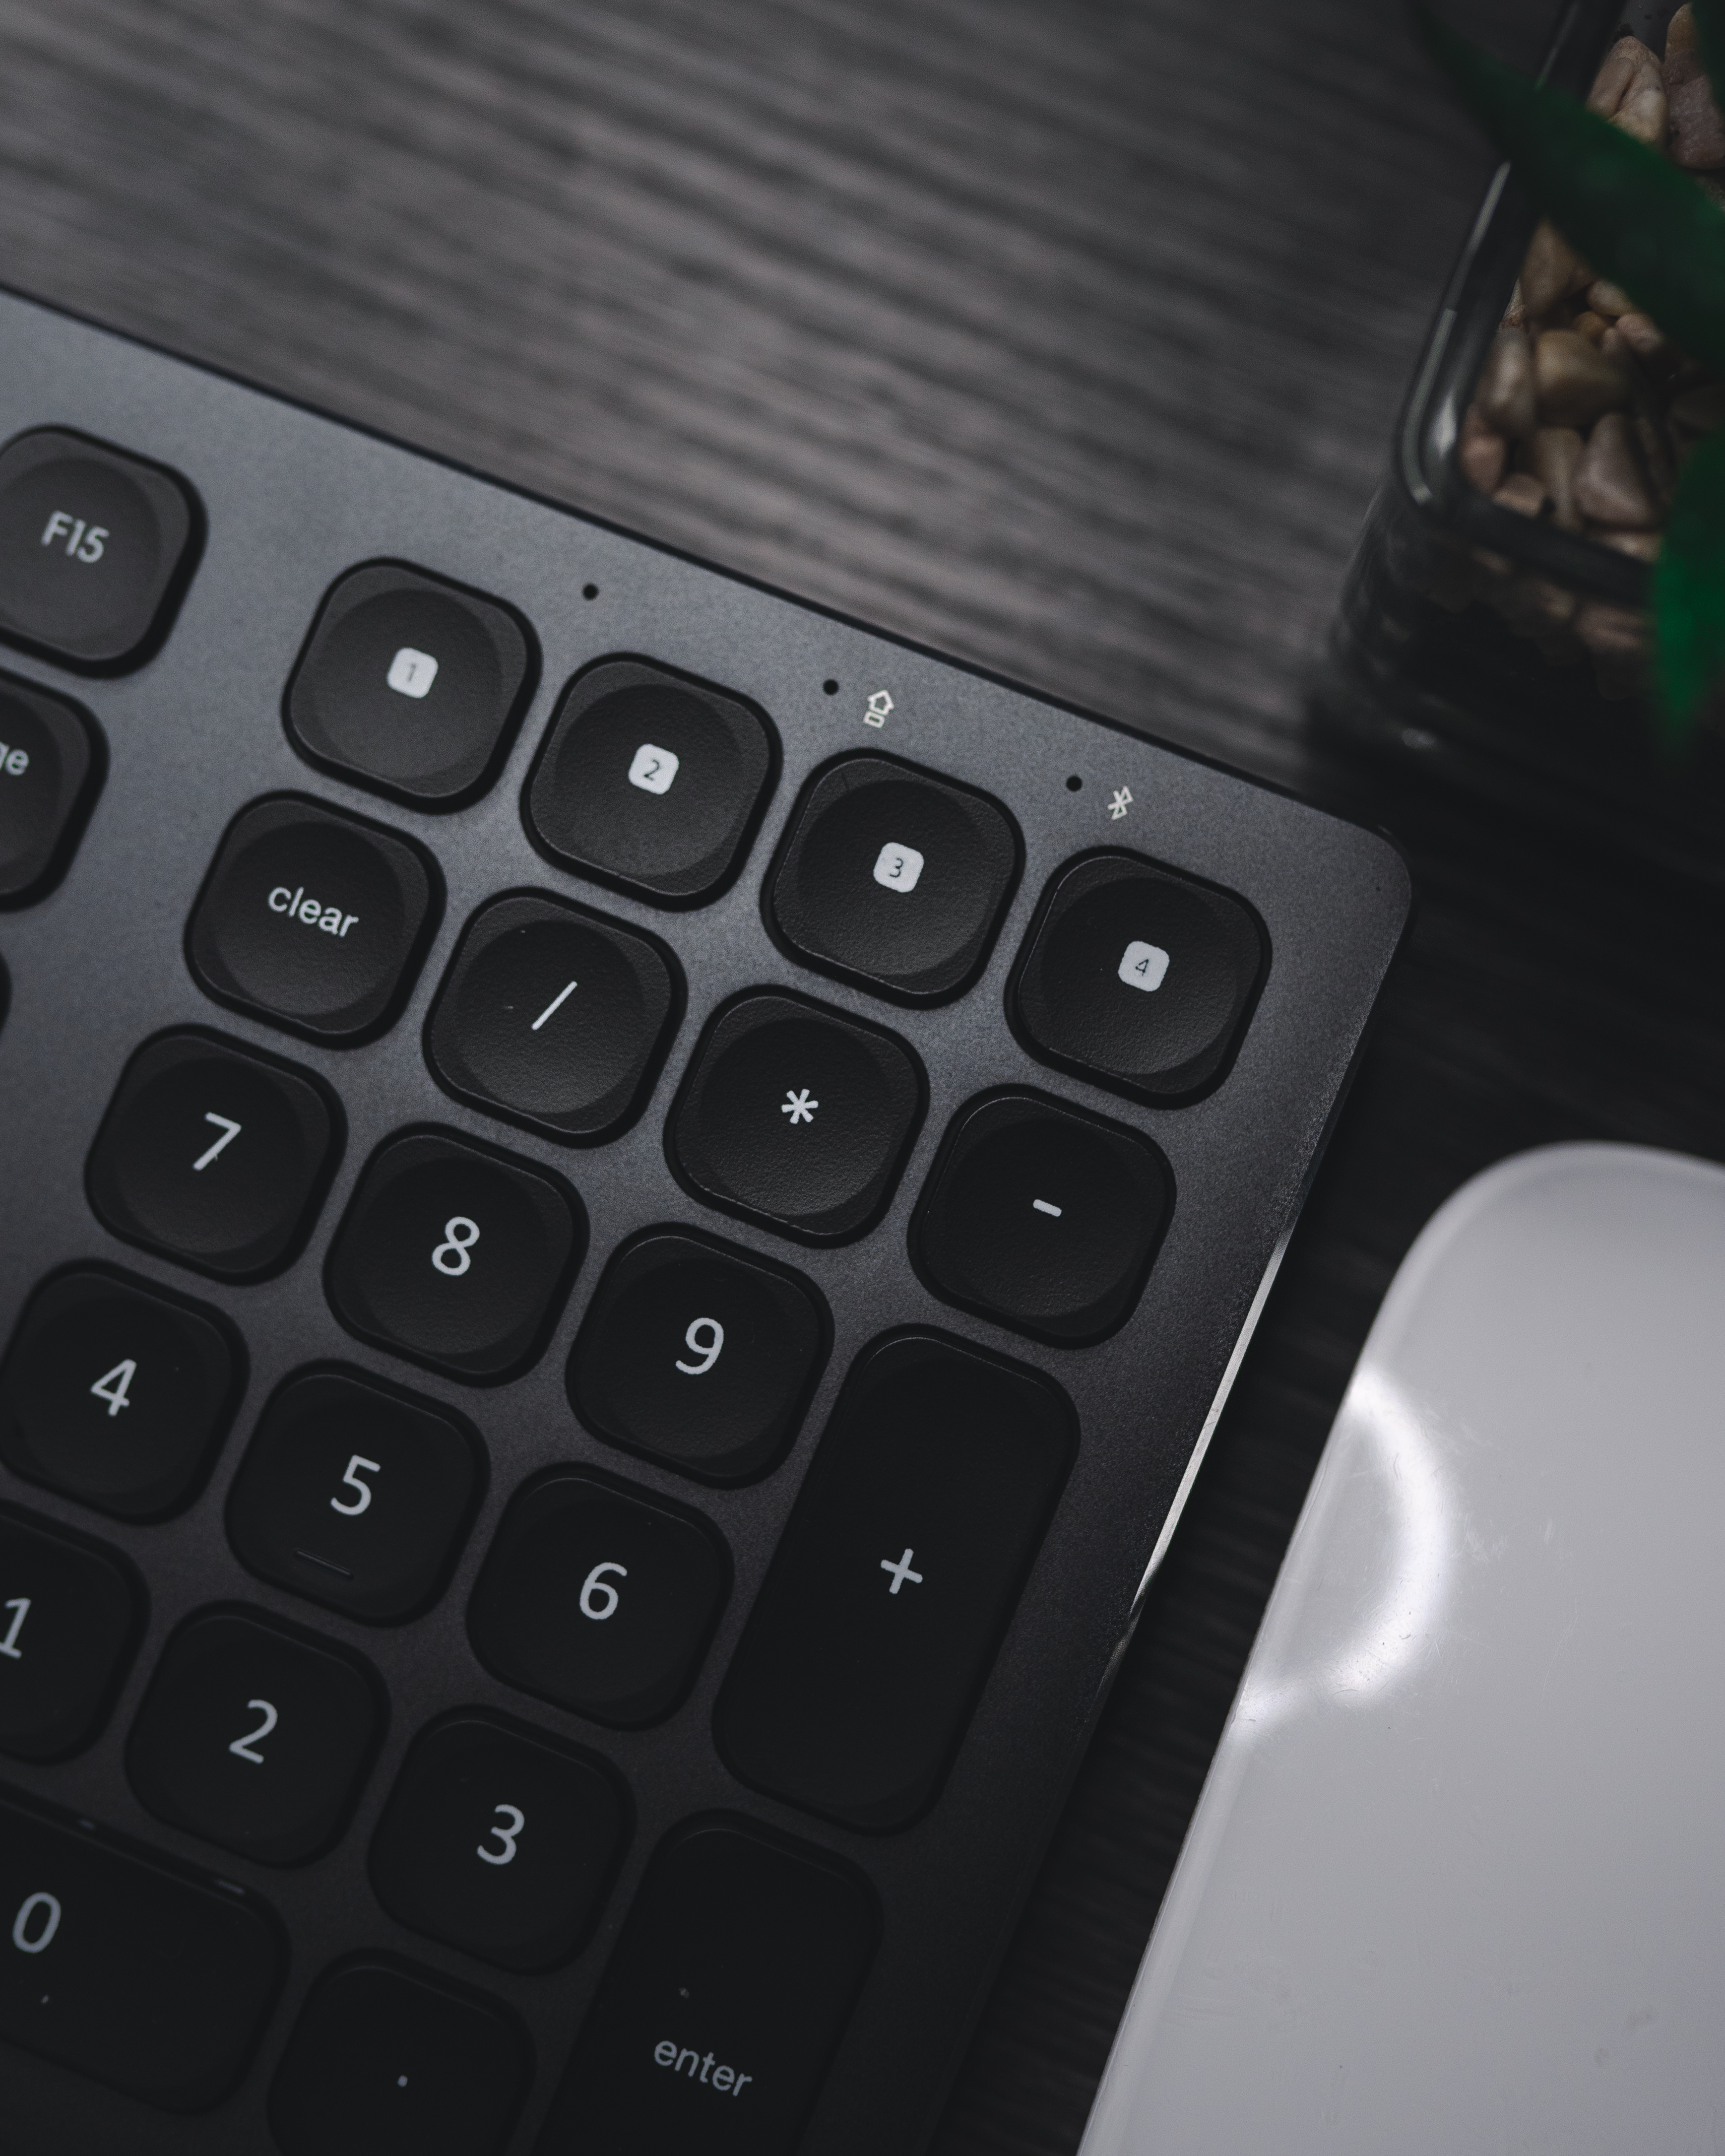 Choose from a curated selection of keyboard backgrounds. Always free on Unsplash.